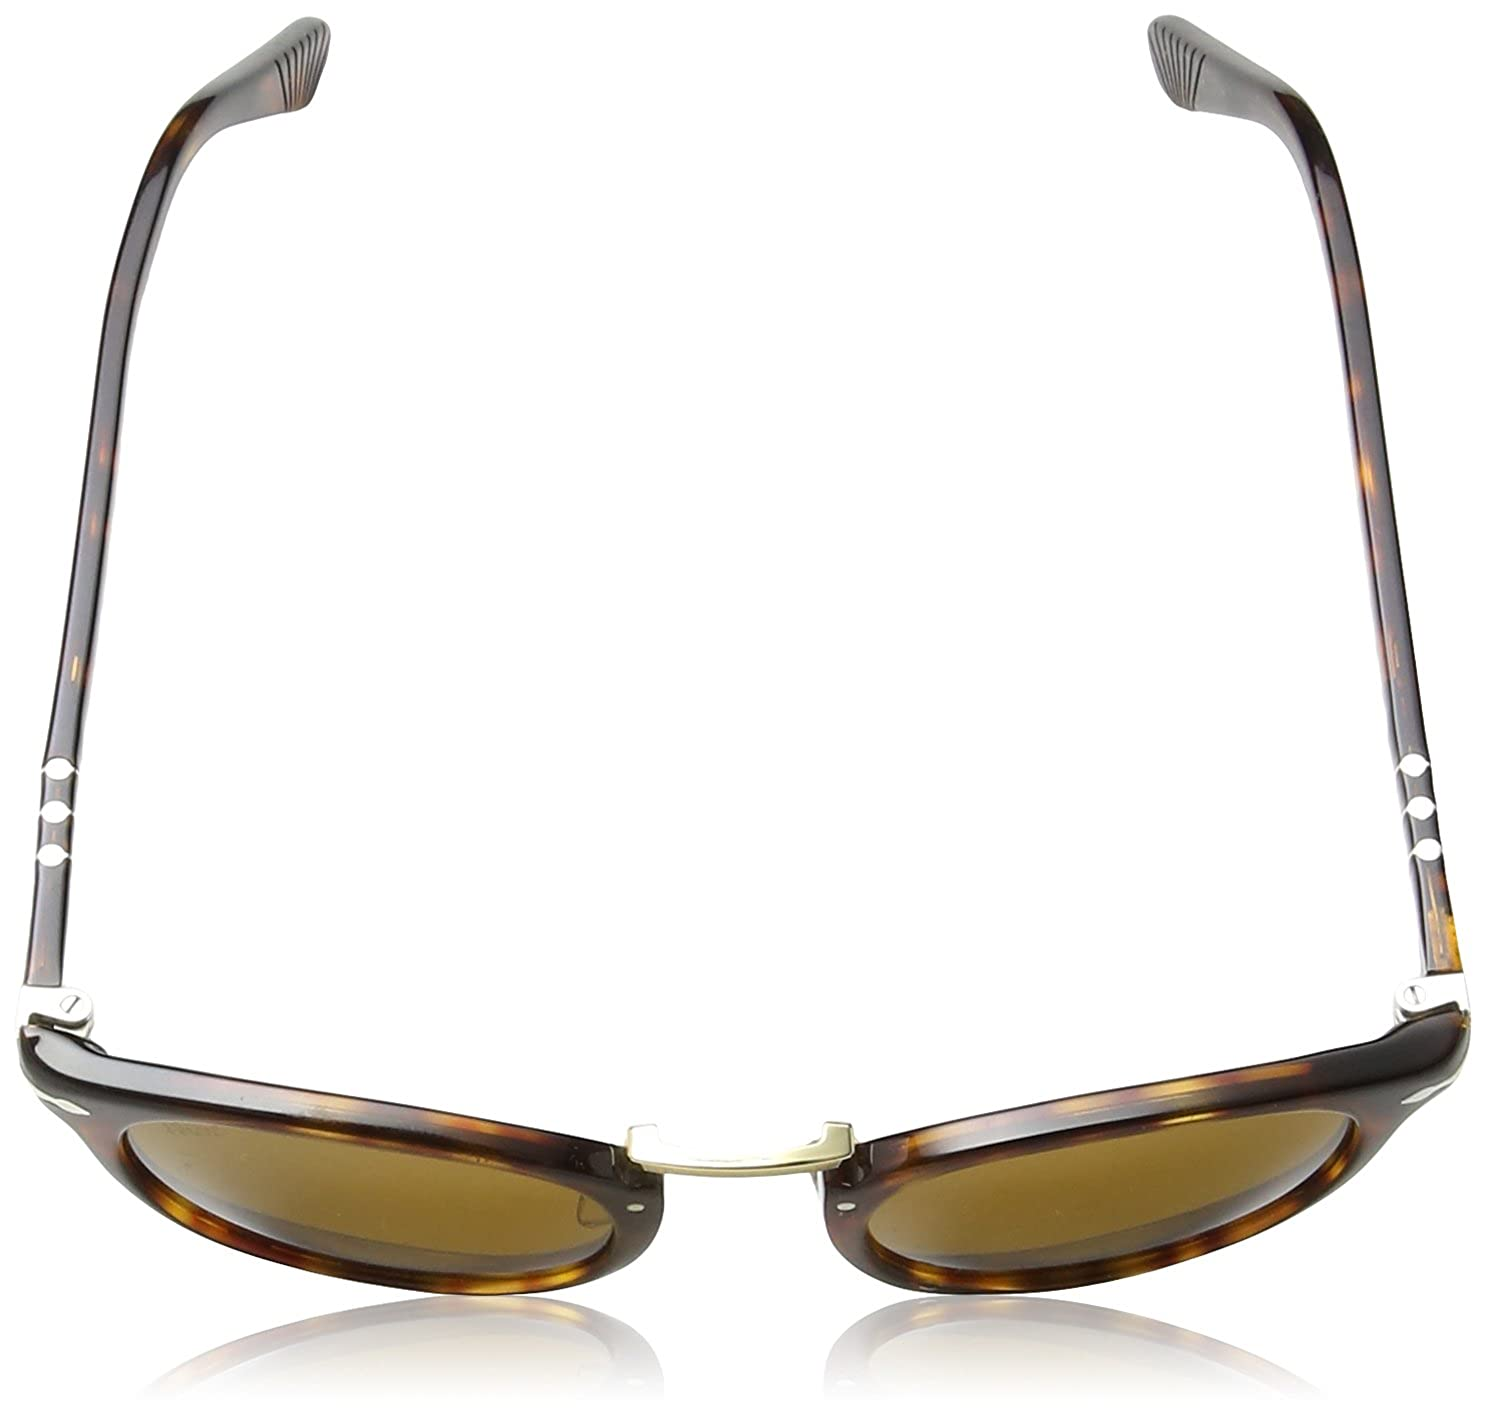 23bad1636f2 Persol Sonnenbrille (PO3108S)  Persol  Amazon.co.uk  Clothing